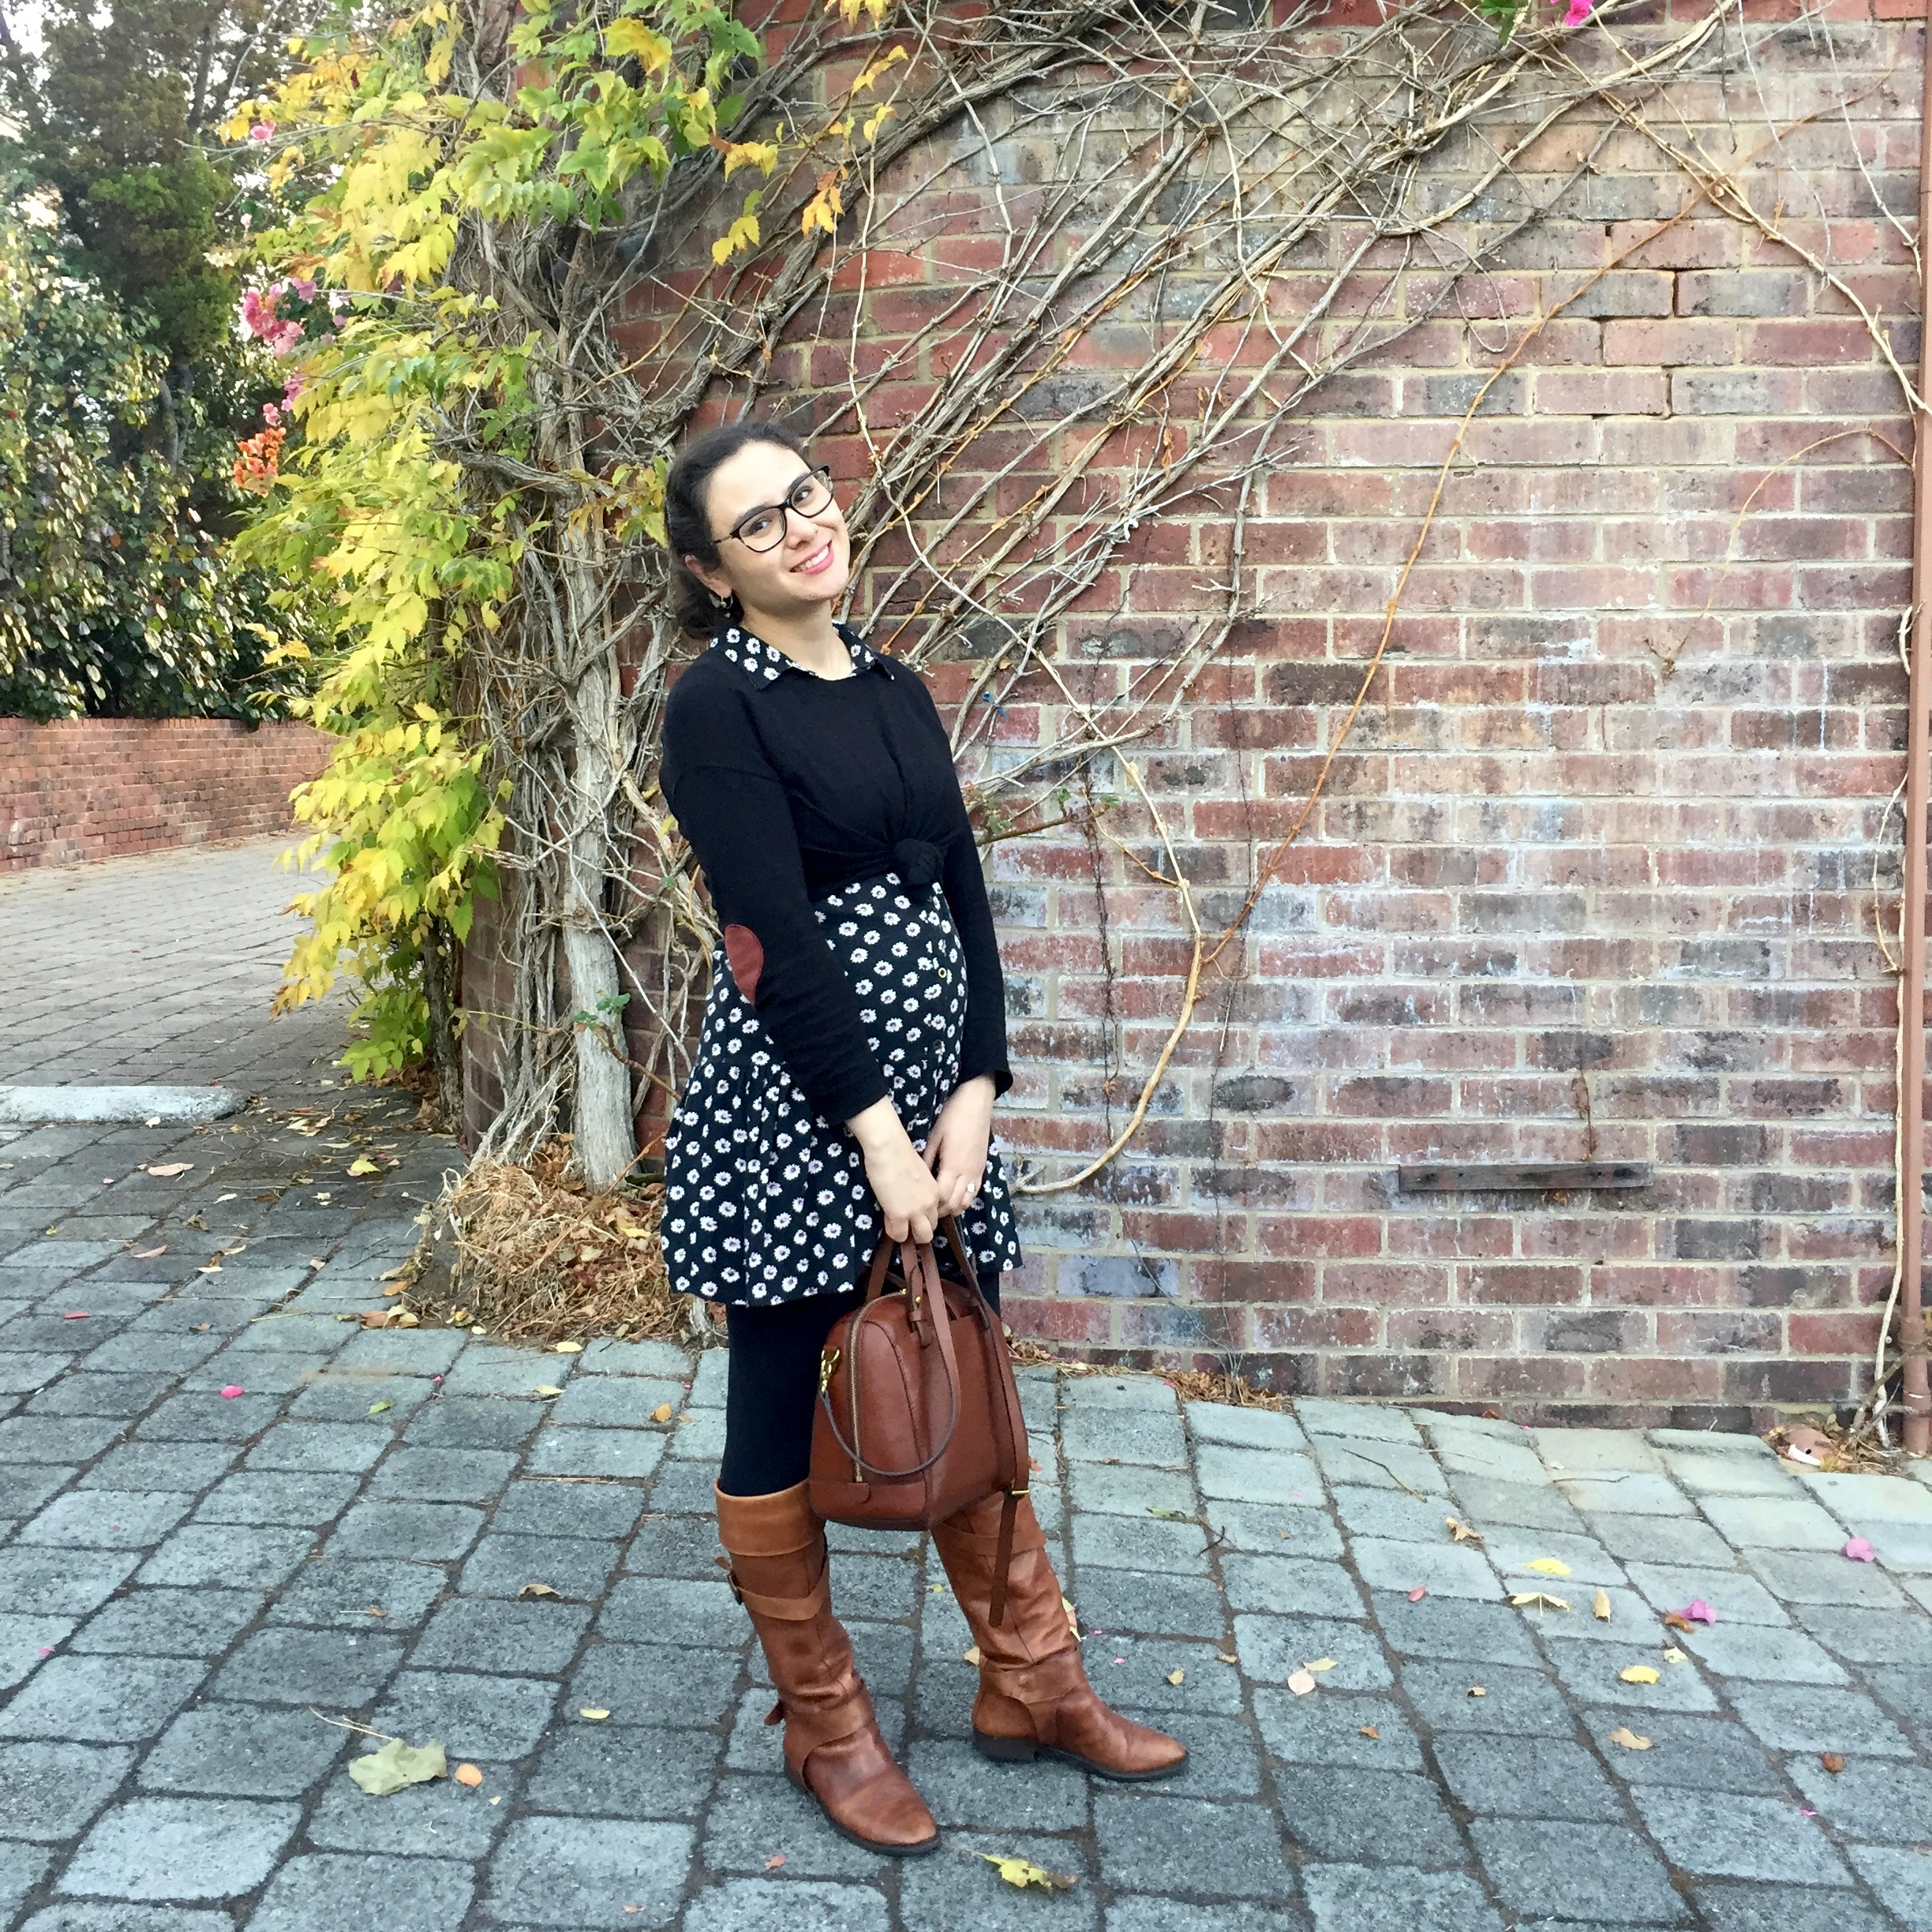 How+to+take+a+summer+dress+into+winter